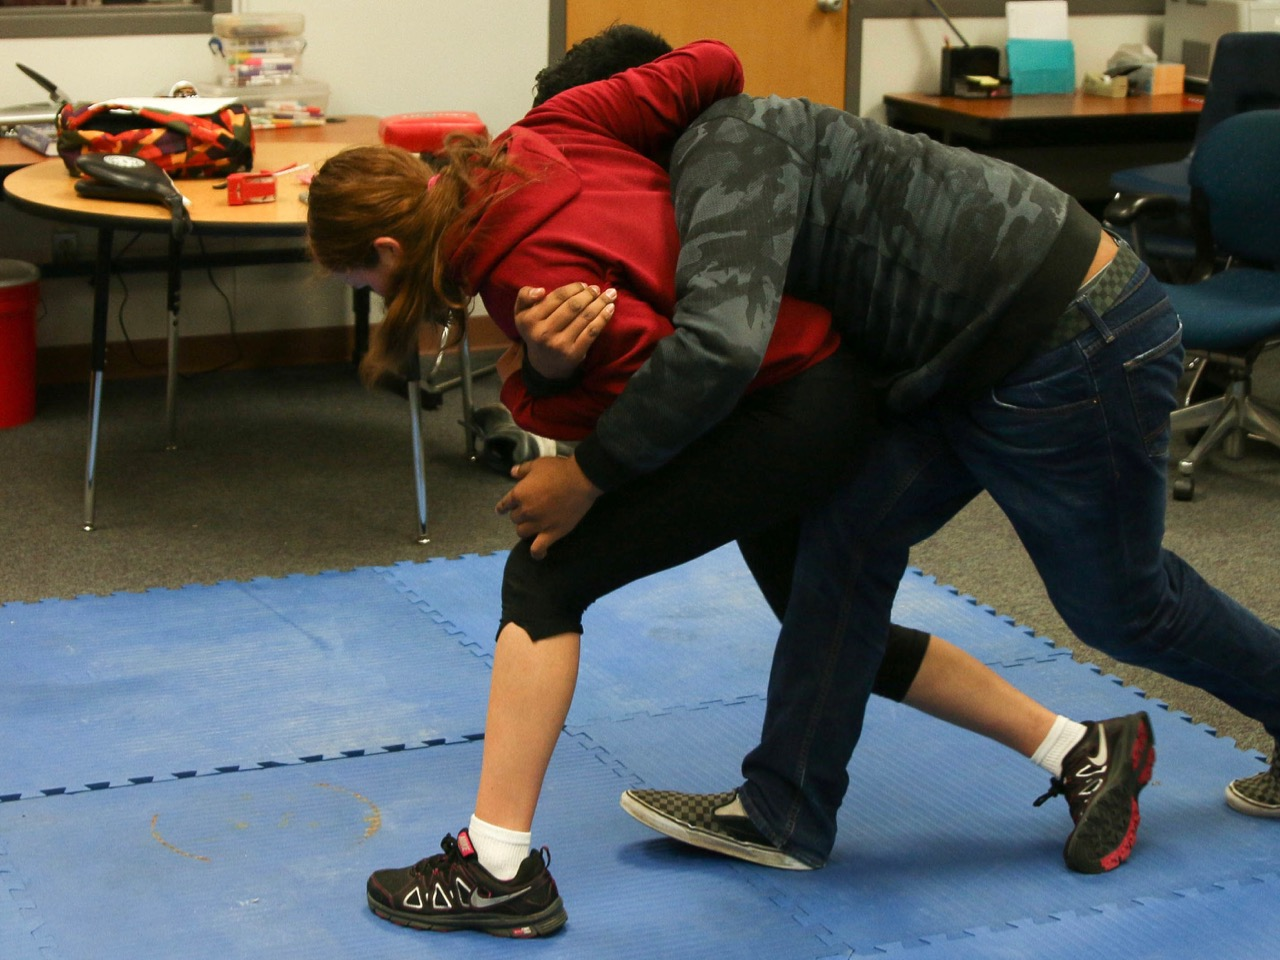 'It could be me': Native American teen teaches self-defense to keep indigenous kids safe